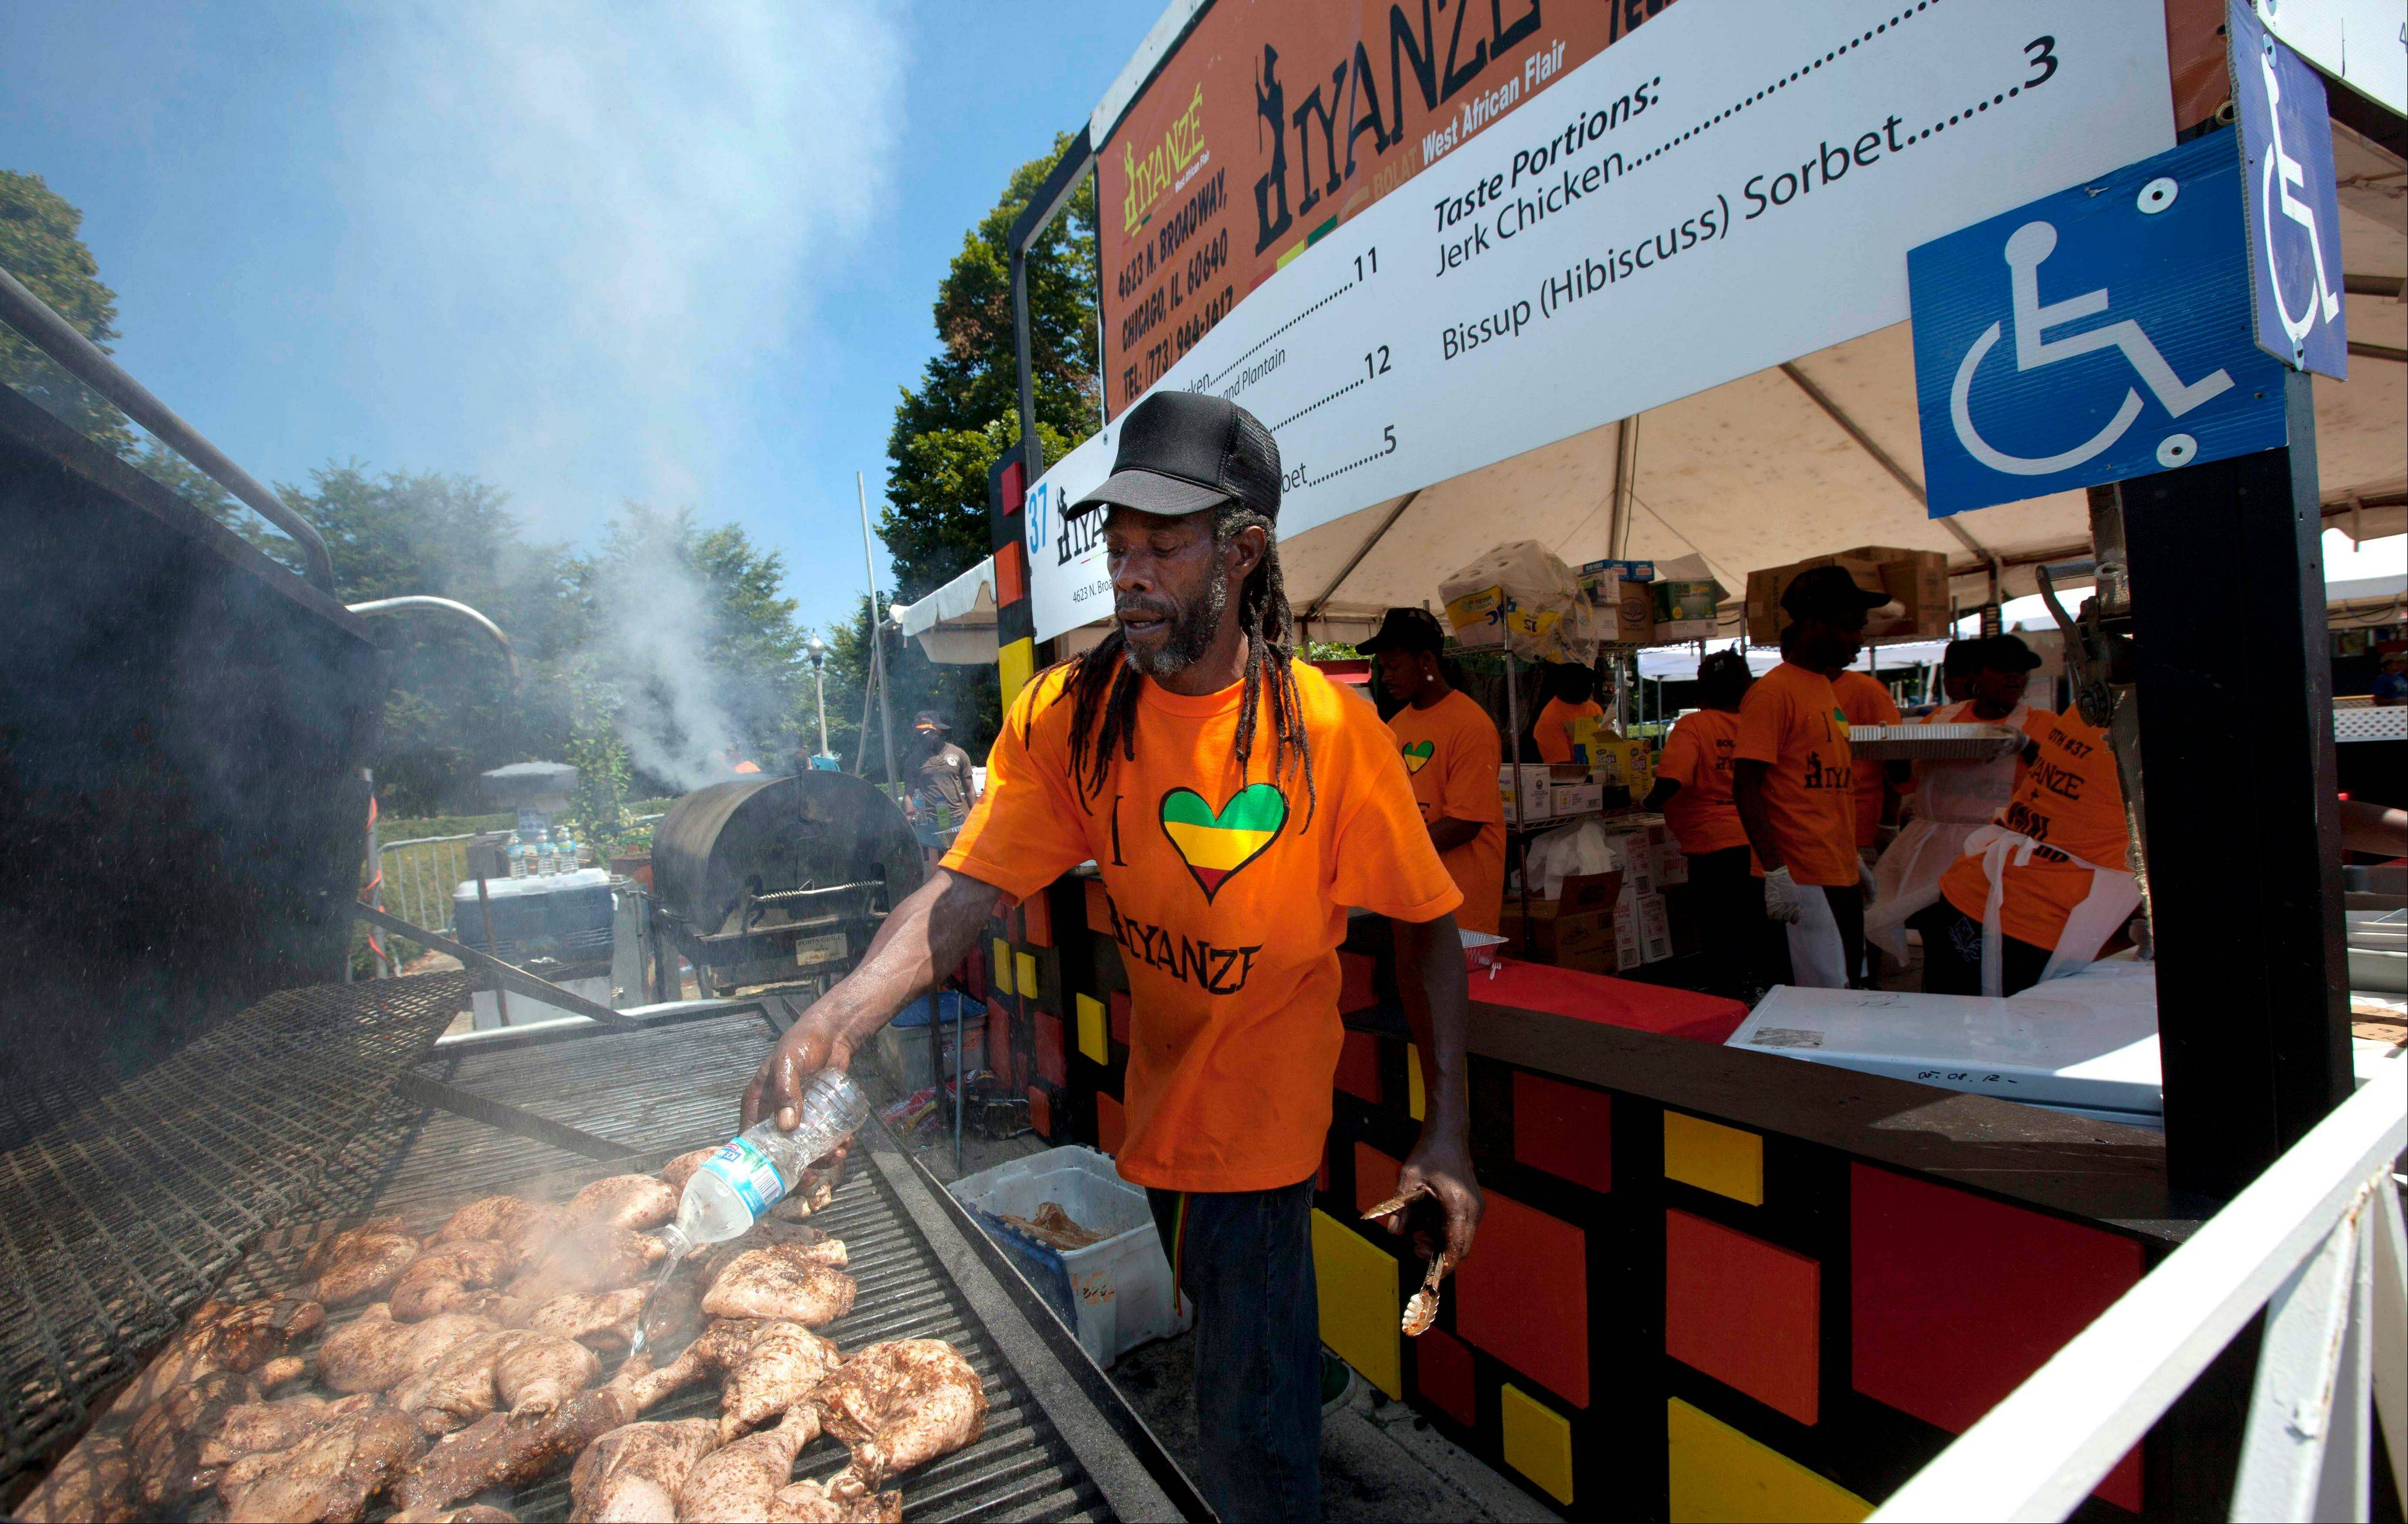 A vendor barbecues chicken at the Taste of Chicago last July. This year's festival runs July 10-14.